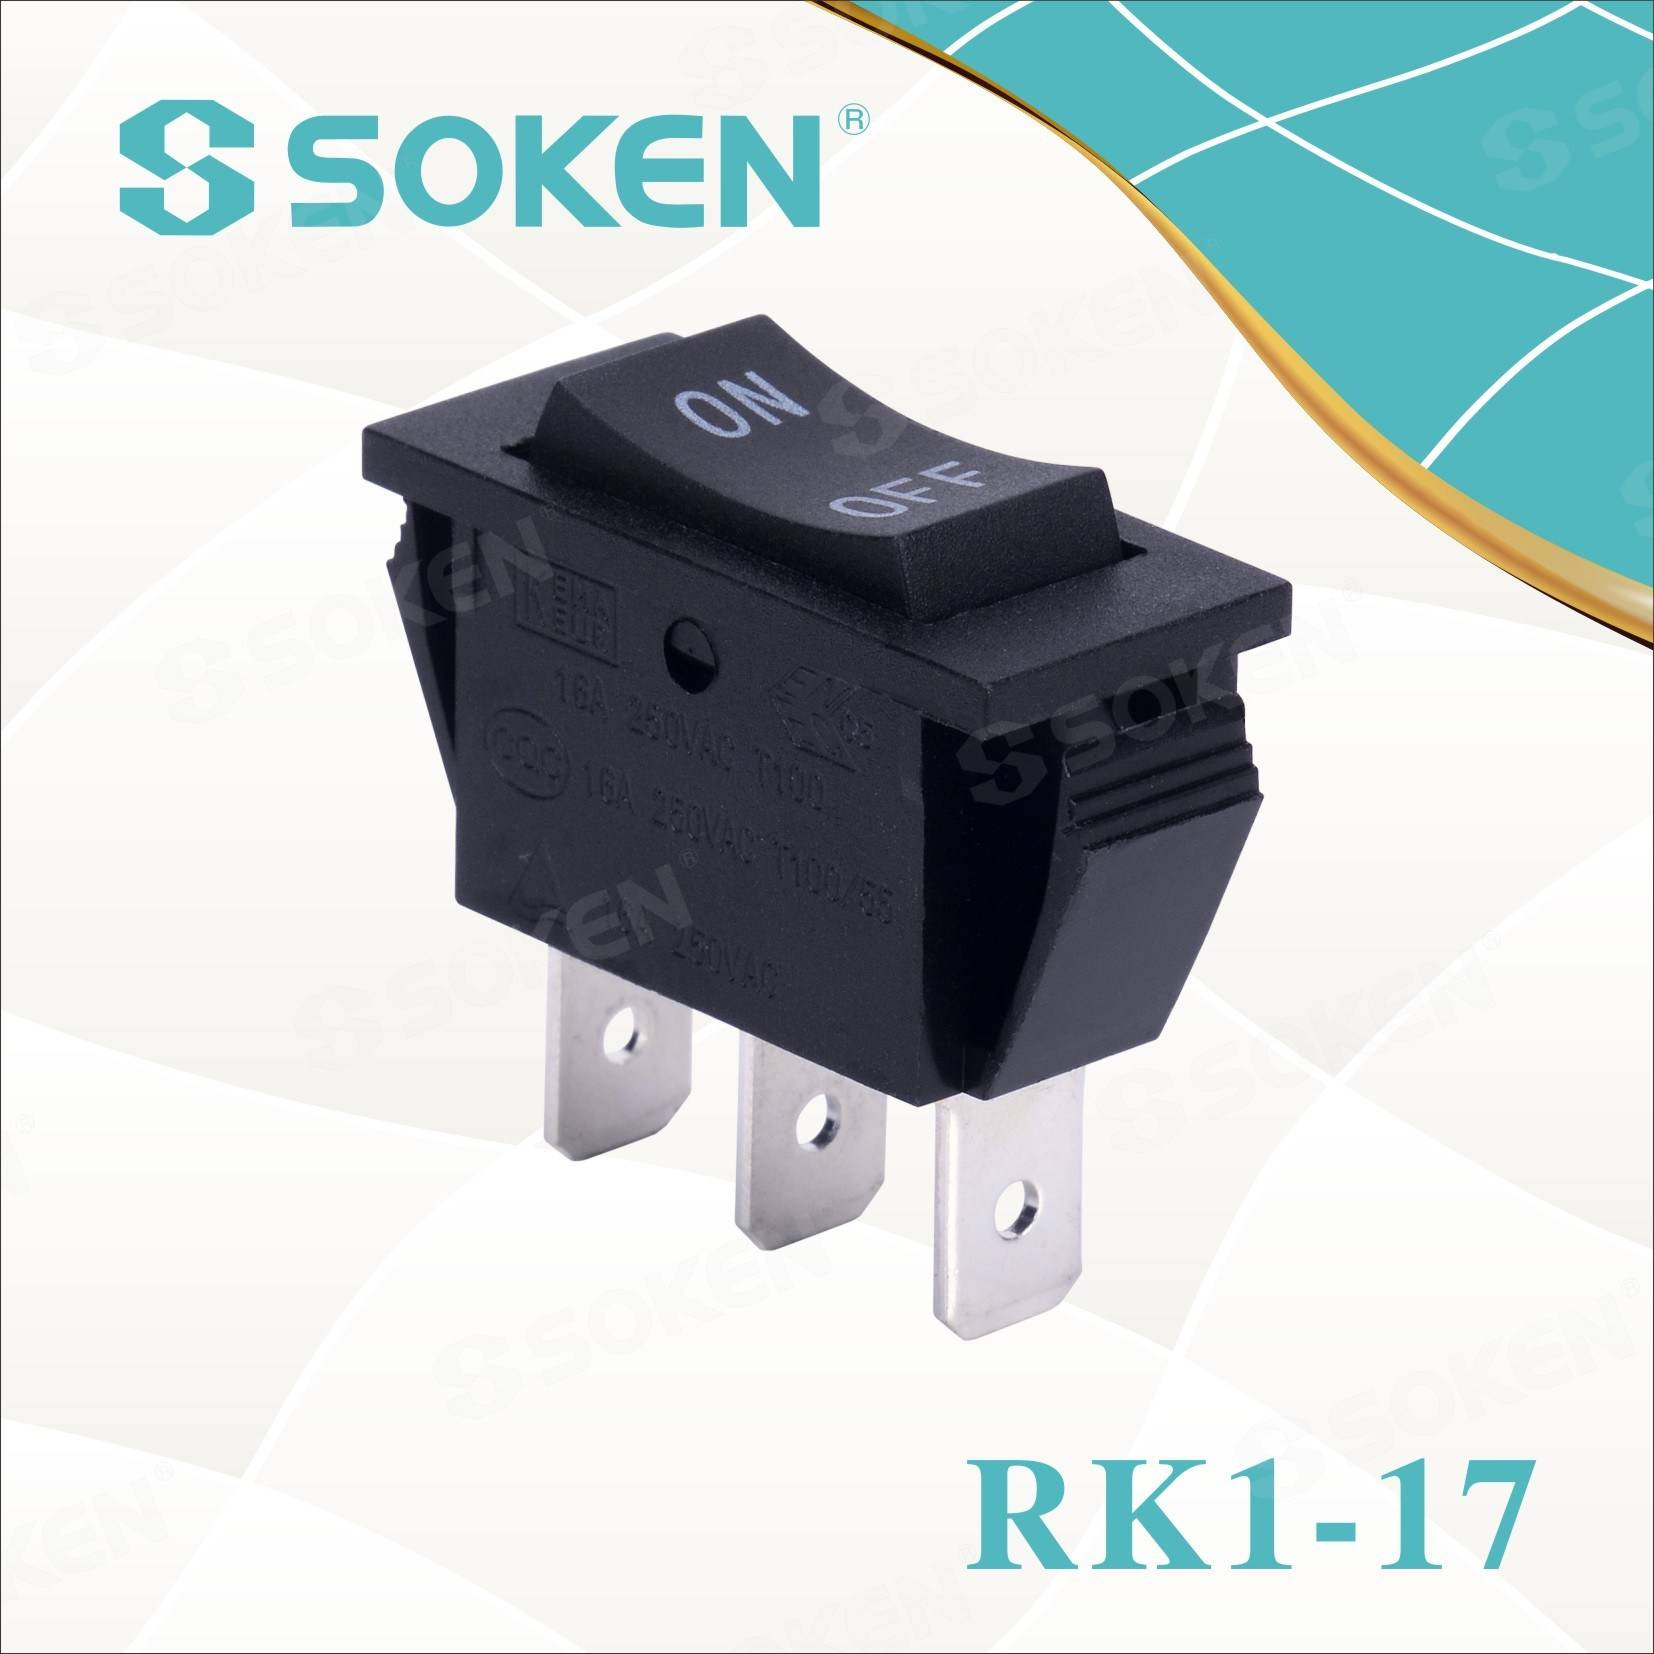 Soken Rk1-17 1X3 air falbh air 3pins Rocker Switch